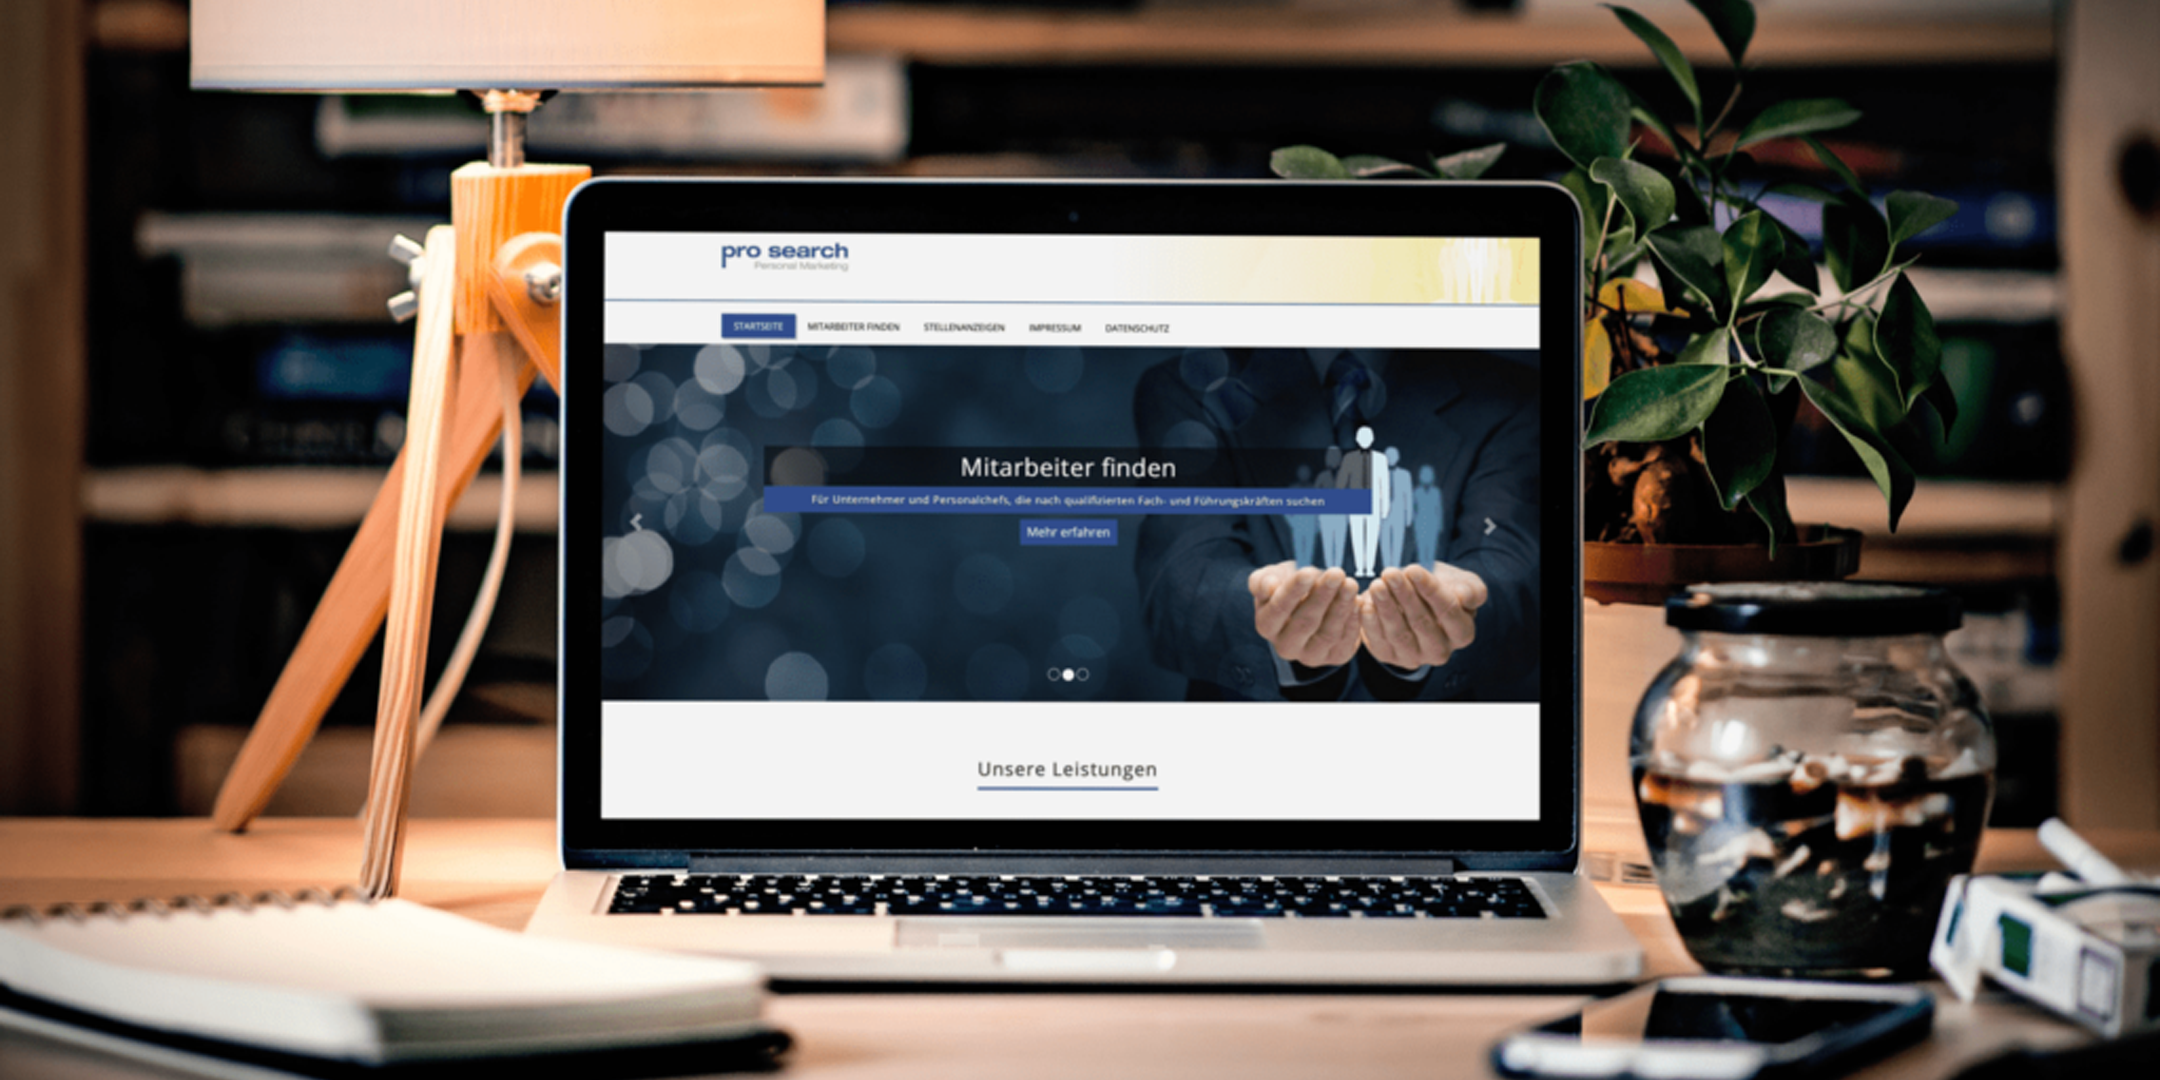 Website Redesign pro search GmbH